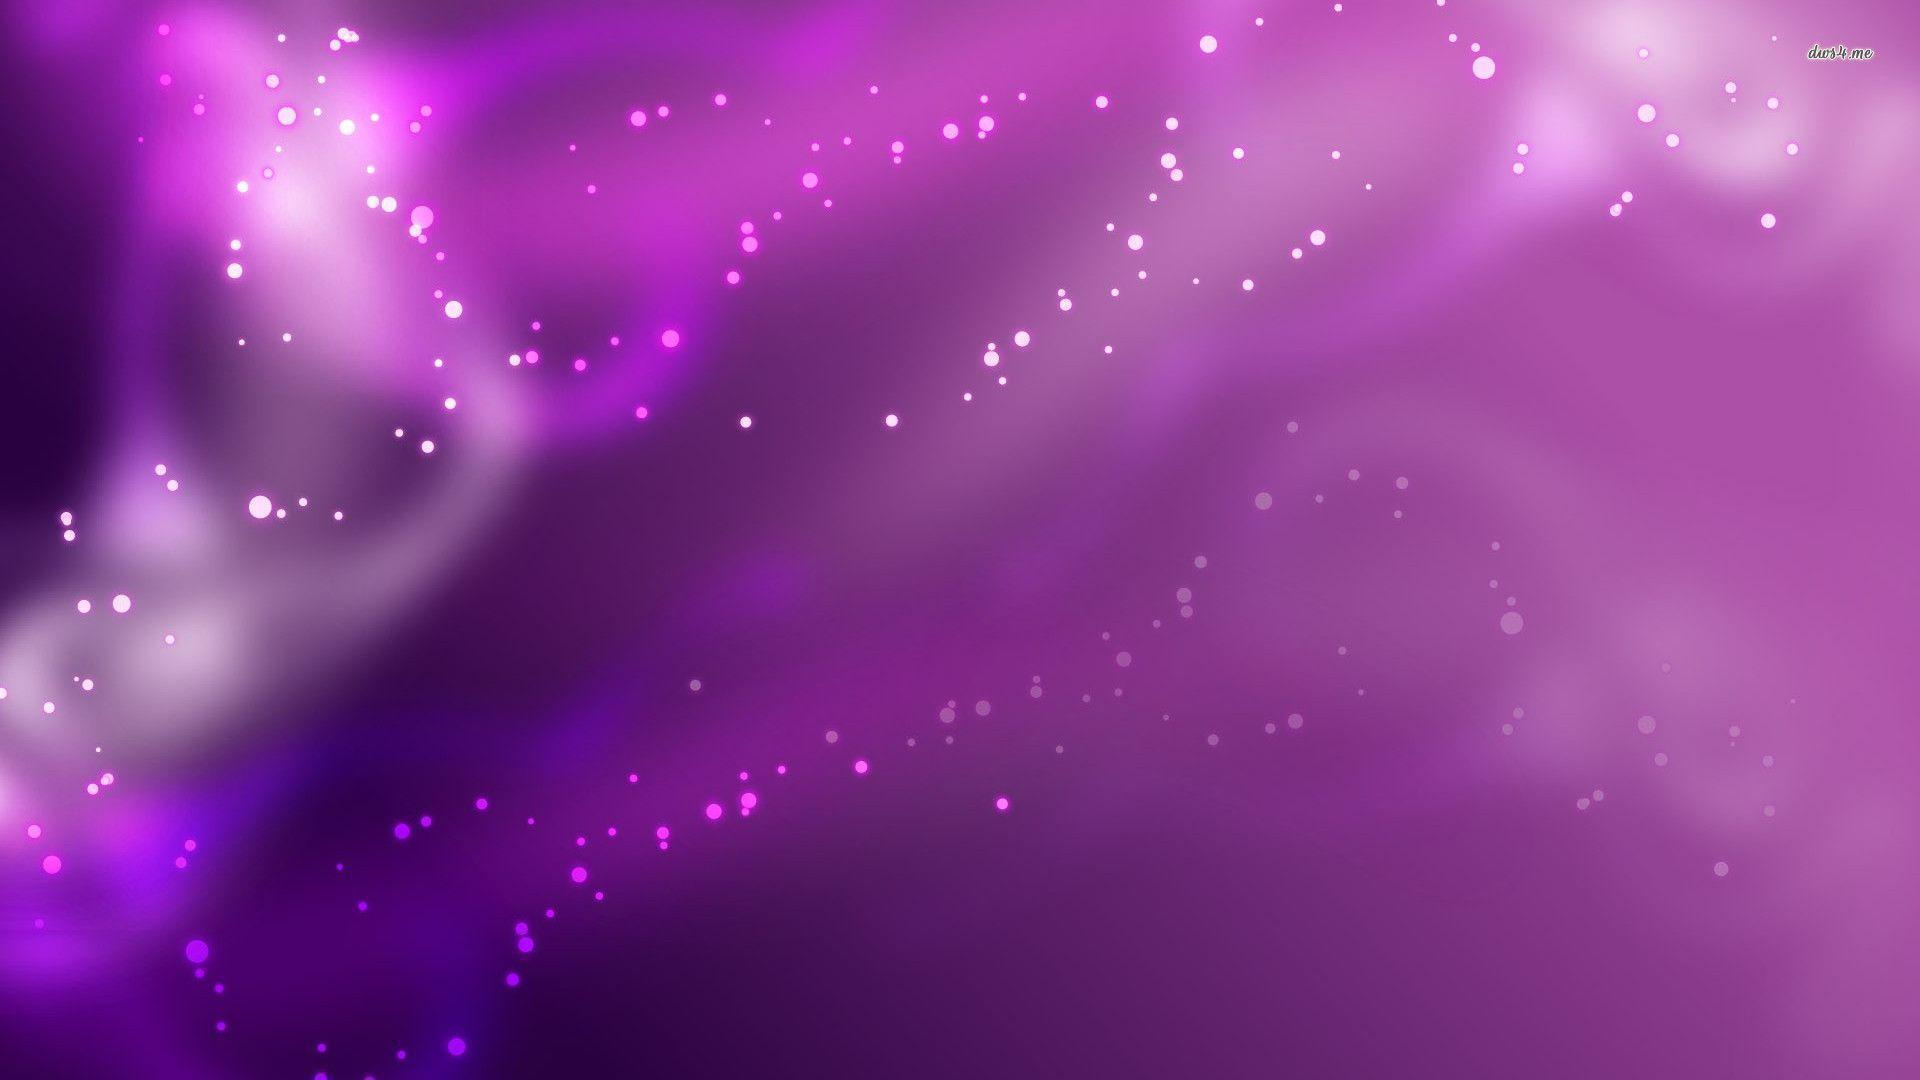 Black And Purple Abstract Widescreen Hd Wallpaper 512: Purple Abstract Backgrounds